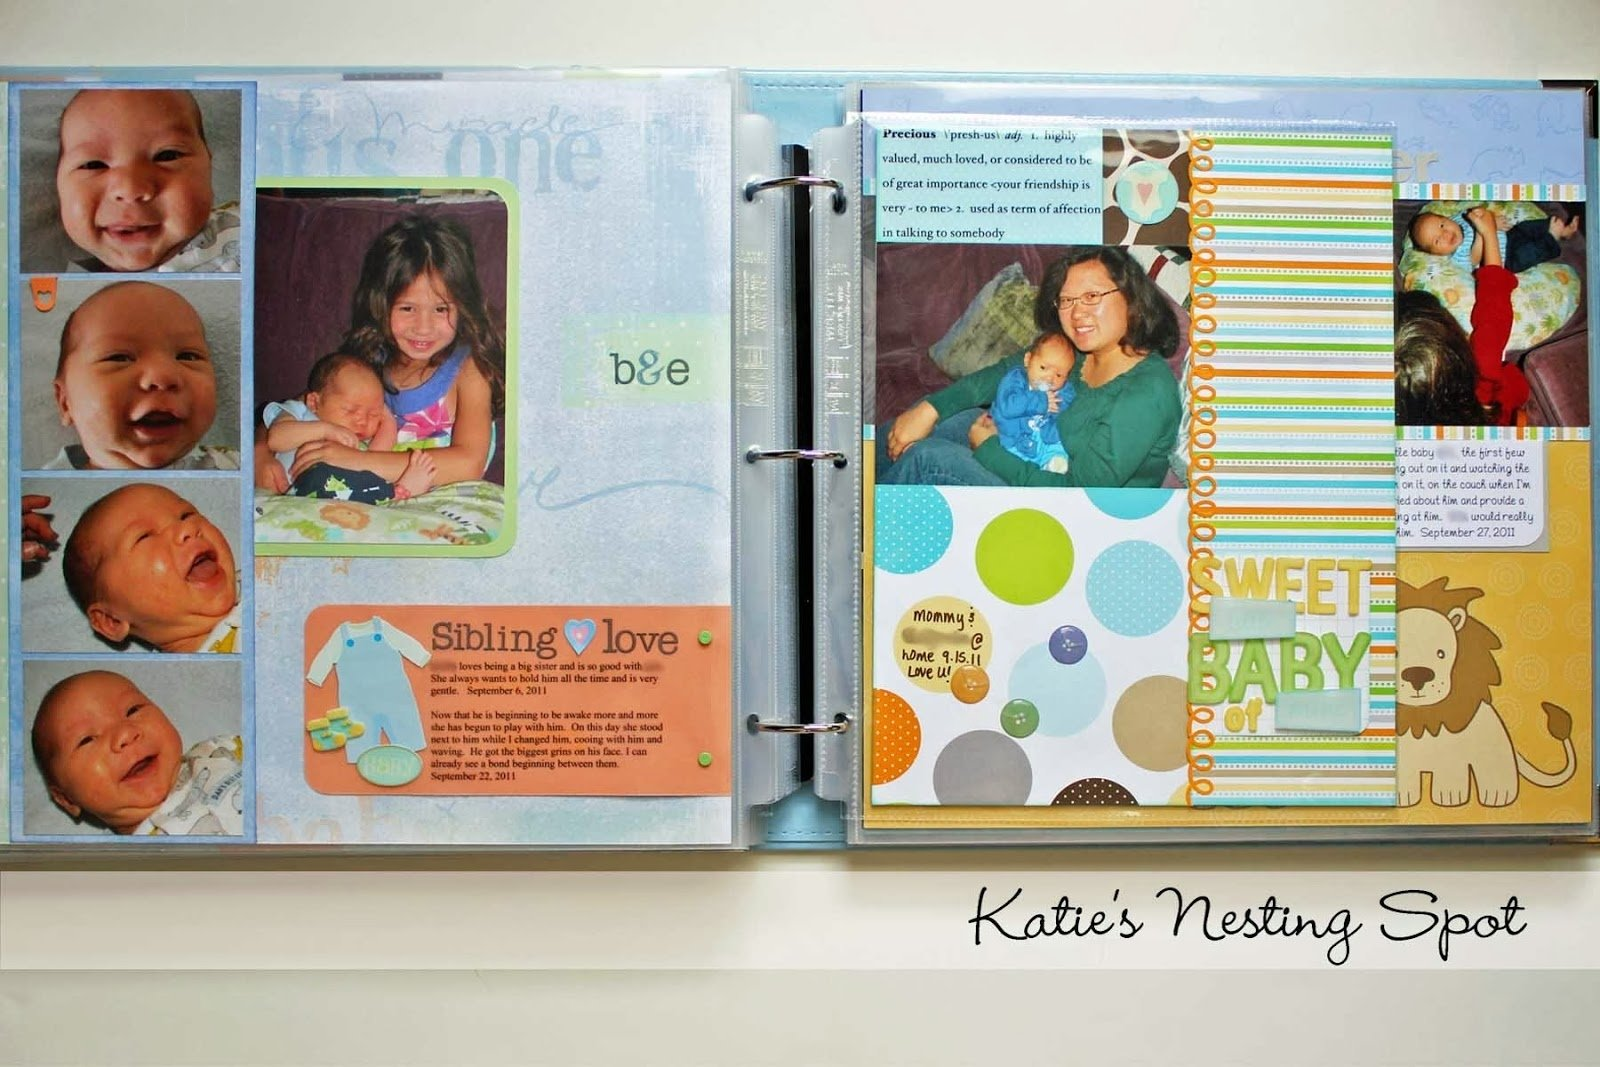 10 Fabulous Scrapbooking Ideas For Baby Boy katies nesting spot baby boy scrapbook pages mixing page sizes 2021